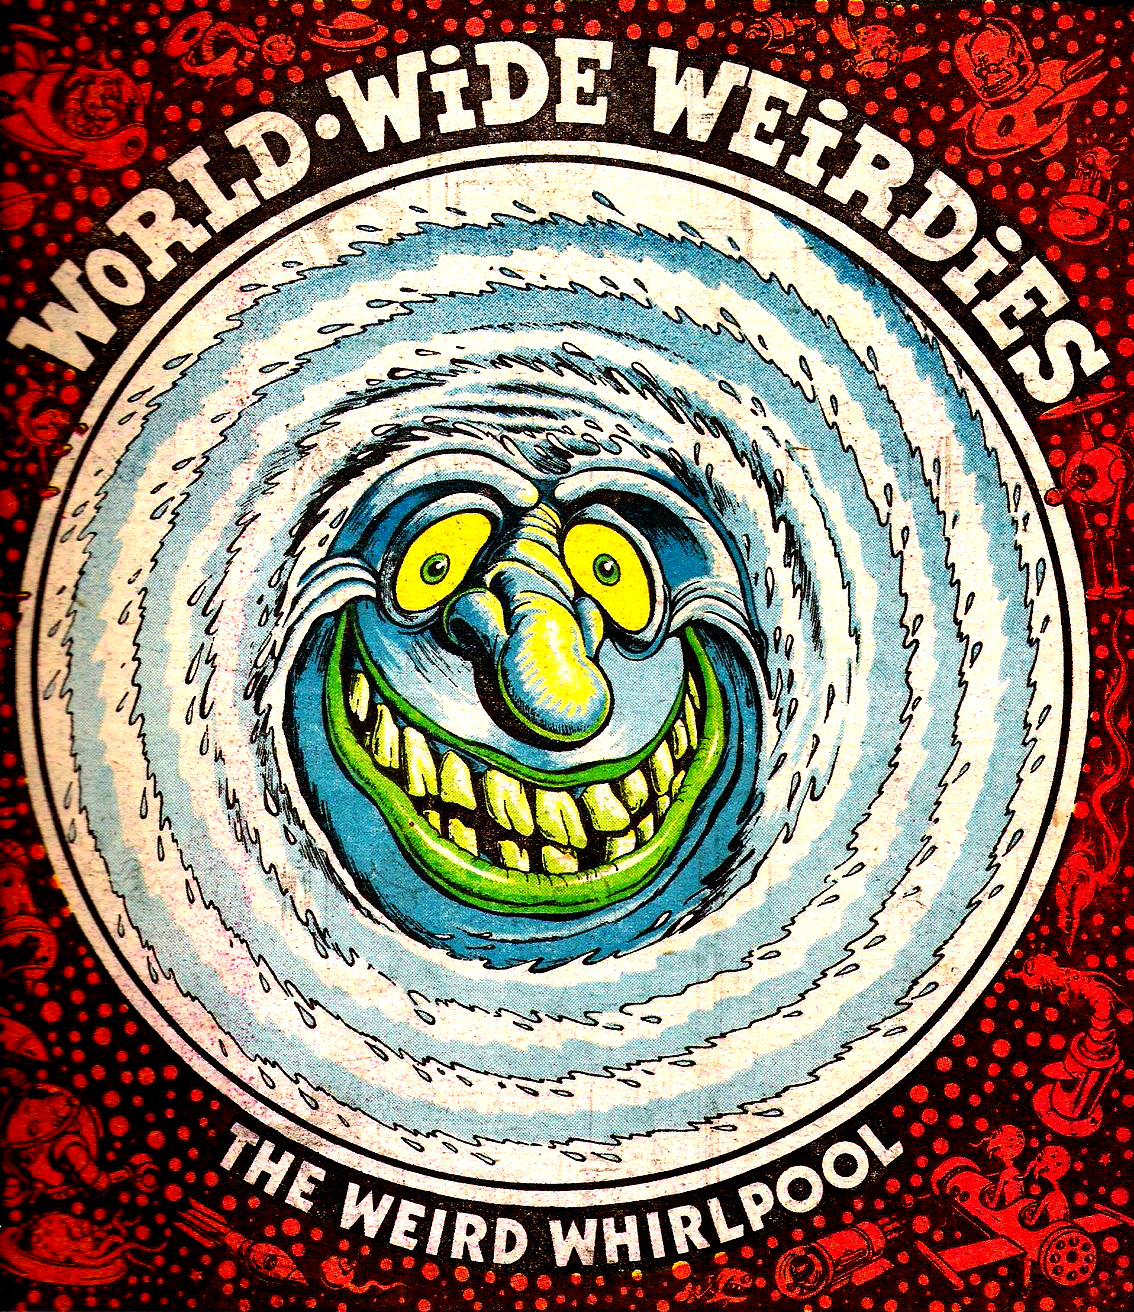 Ken Reid - World Wide Weirdies 37